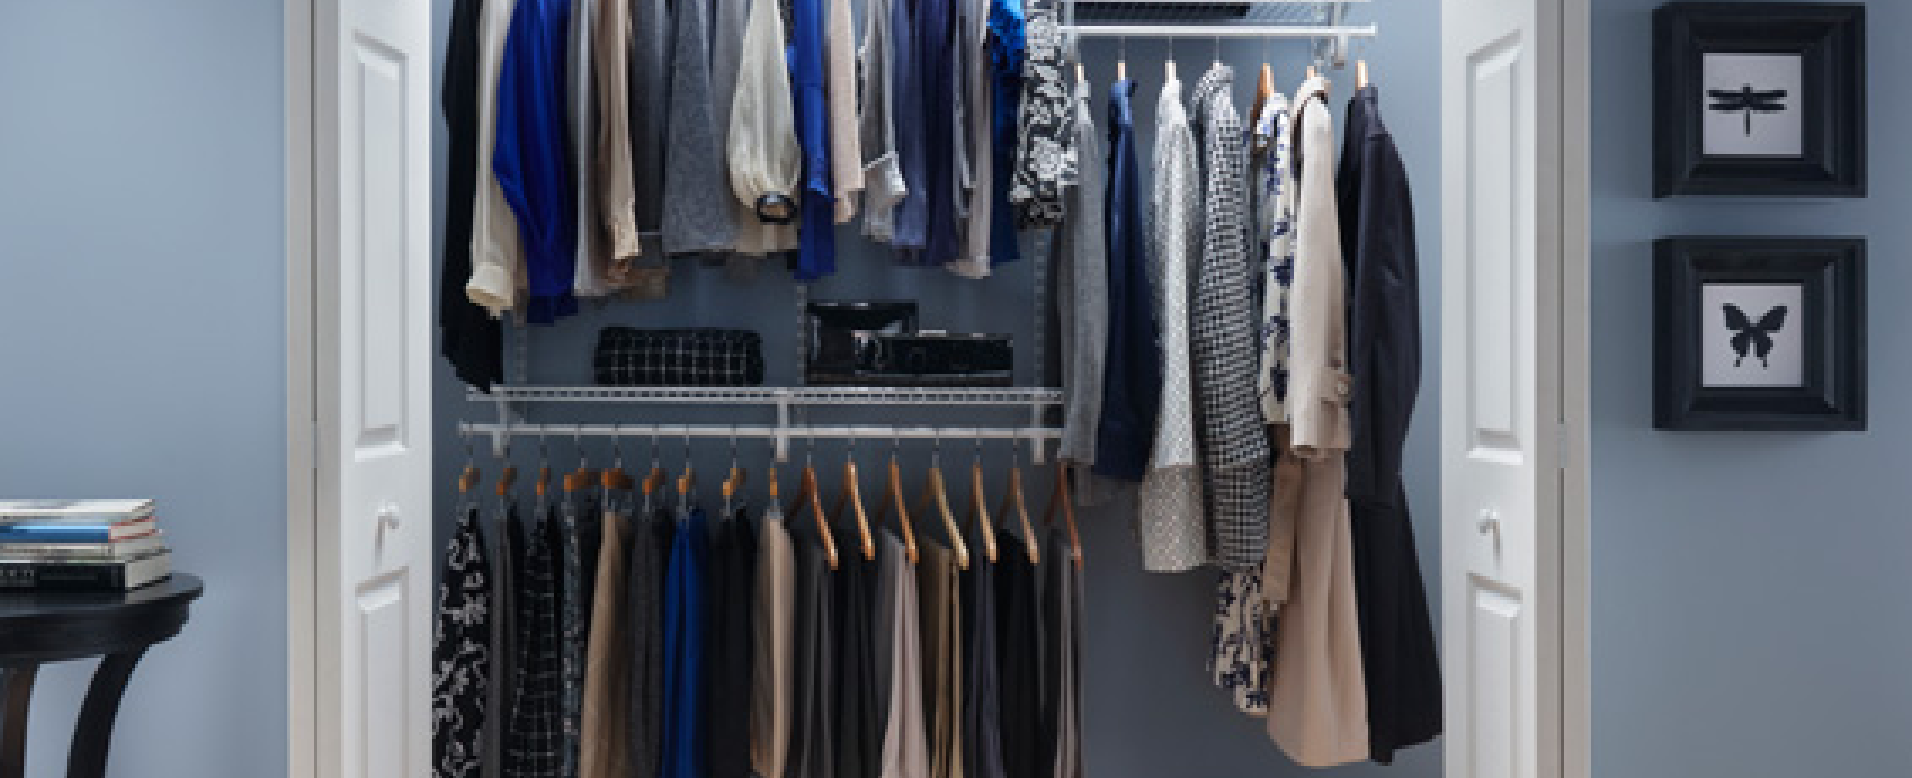 Wire closet shelving and storage solutions from Innovative Closet Designs